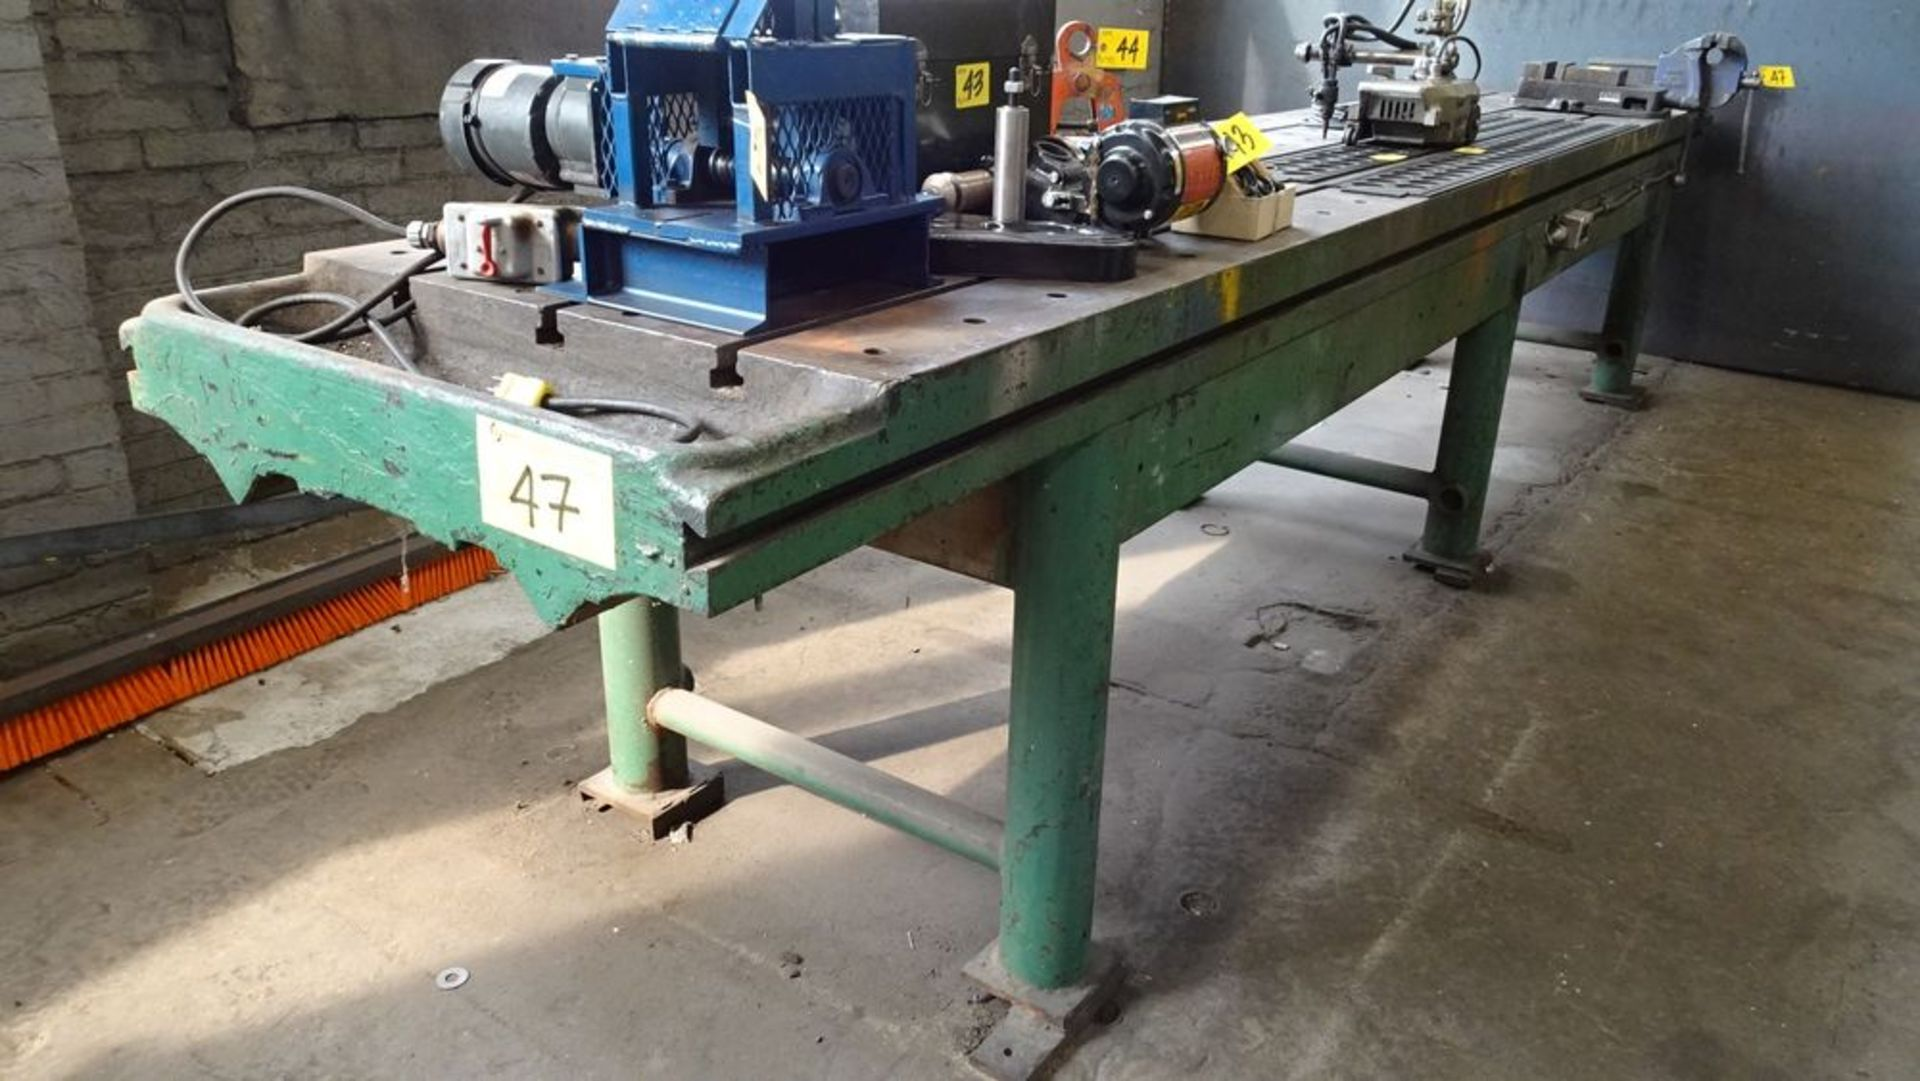 """Lot 47 - 32""""W X 14' LONG X 35"""" HIGH SLOTTED LAY-OUT TABLE C/W RECORD 6"""" BENCH VISE (RIGGING FEE $25)"""